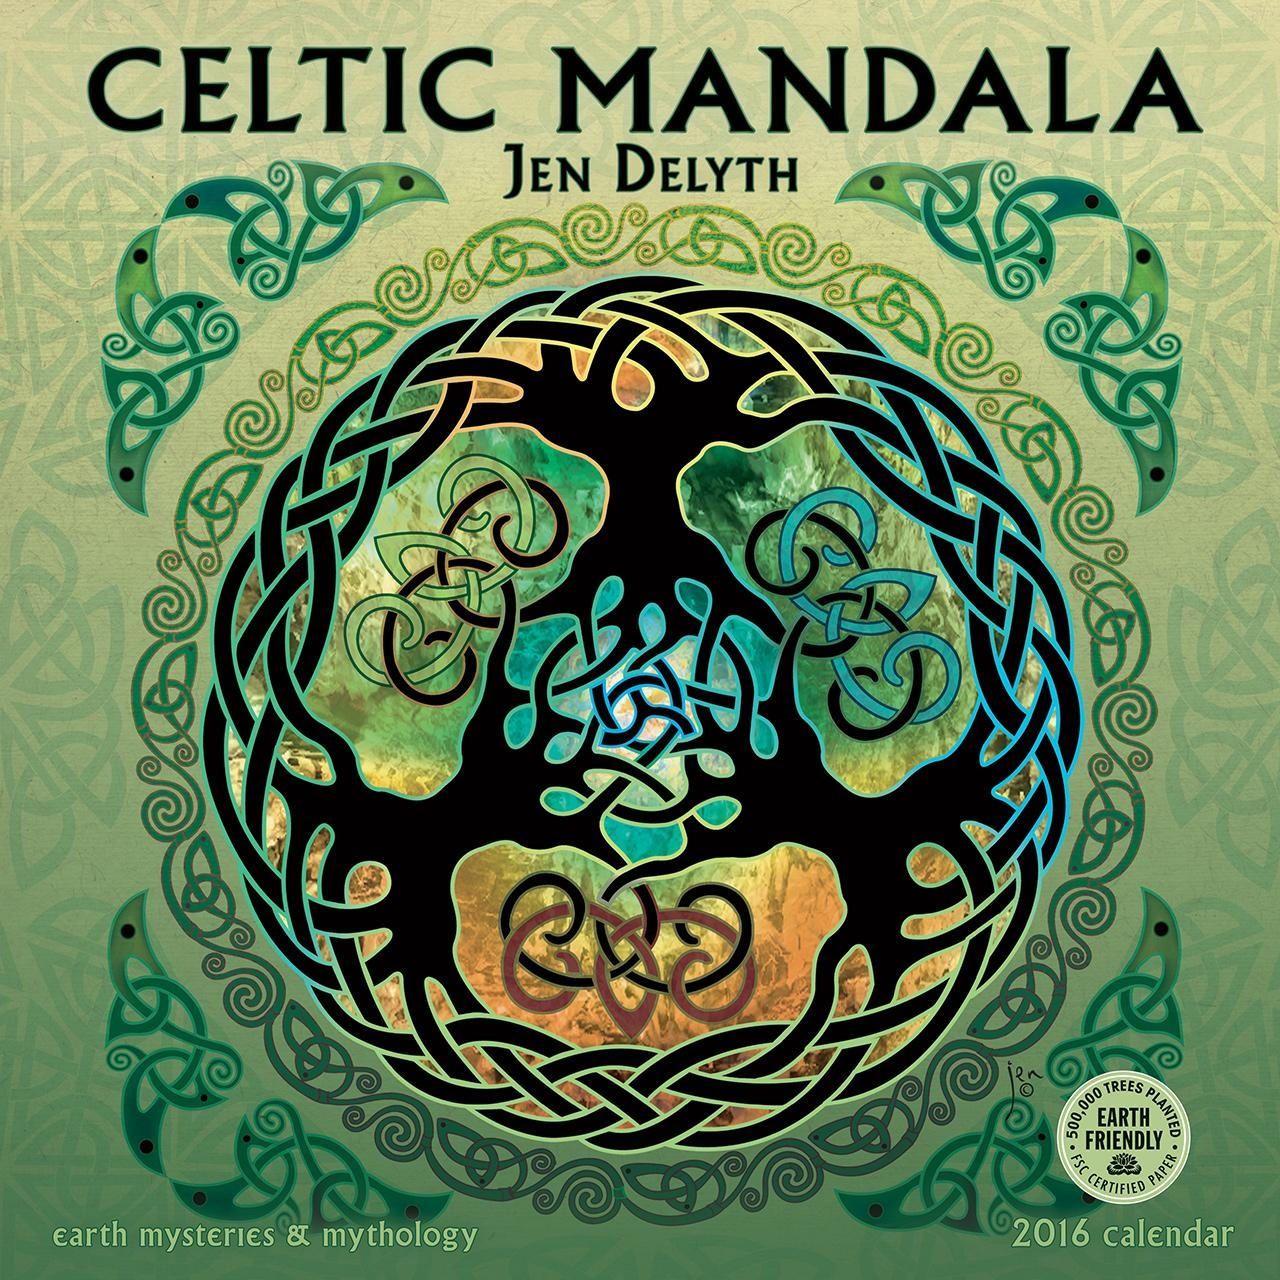 Celtic Mandala 2016 Wall Calendar 11.5 X  (Image 4 of 20)